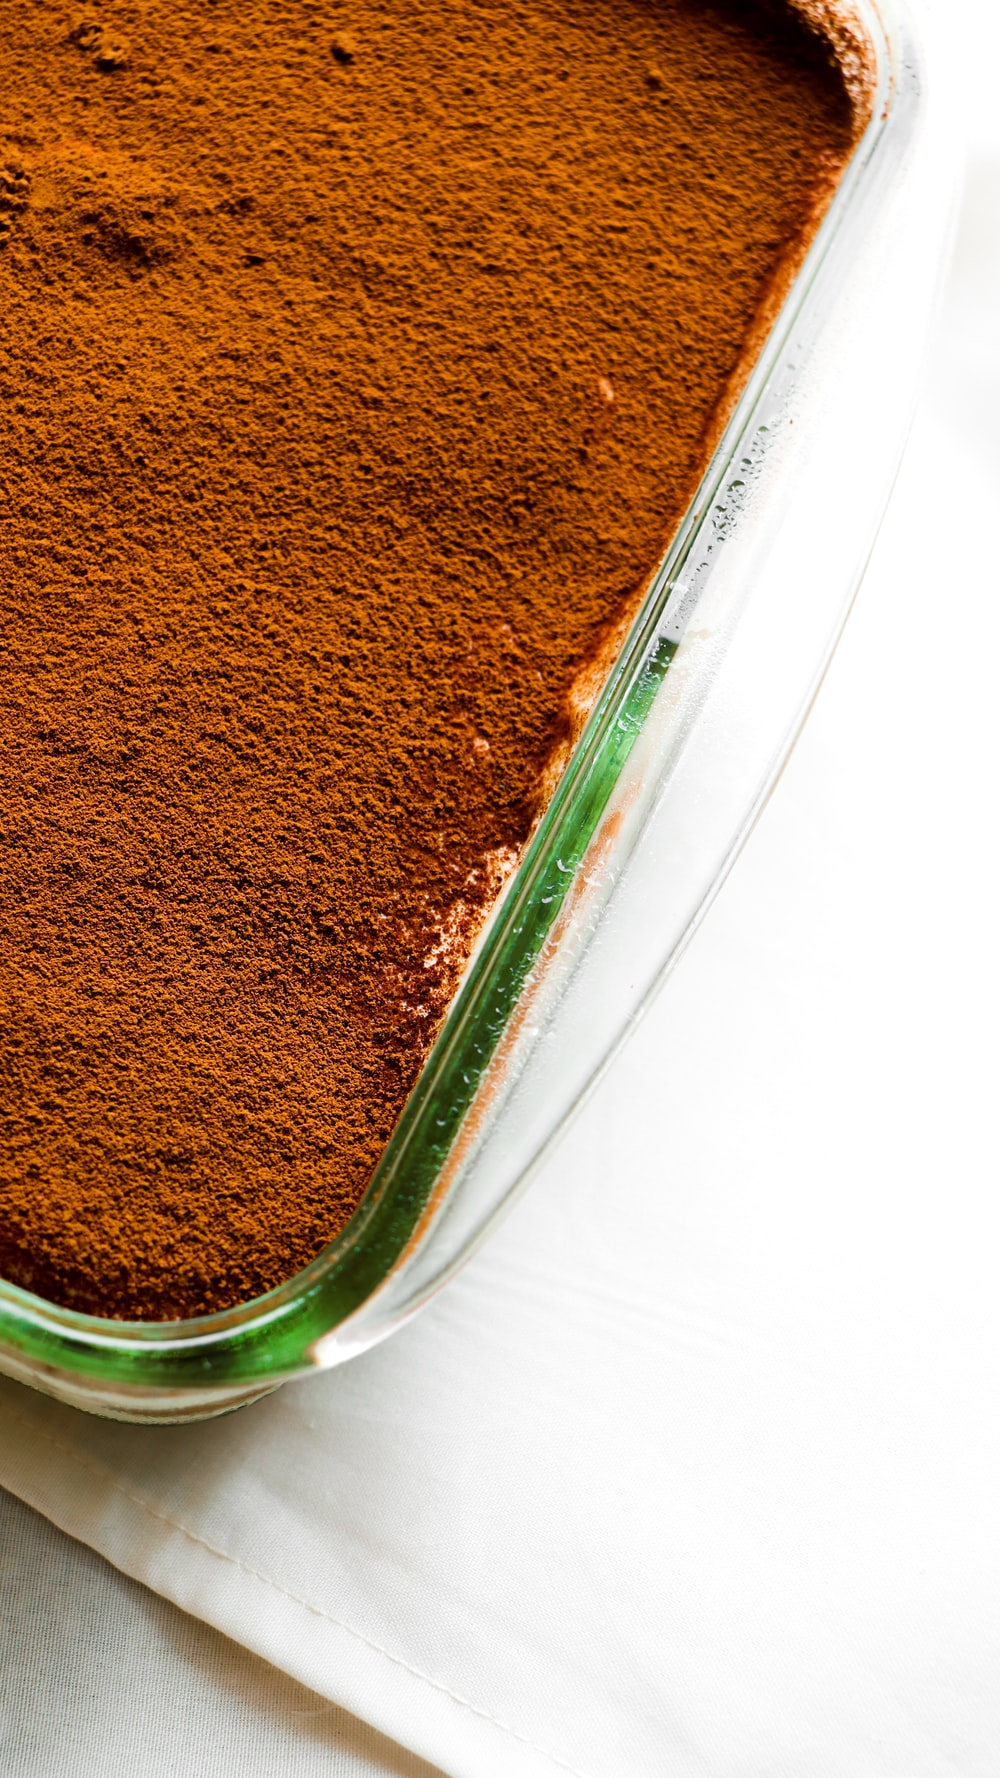 brown powder in clear plastic container